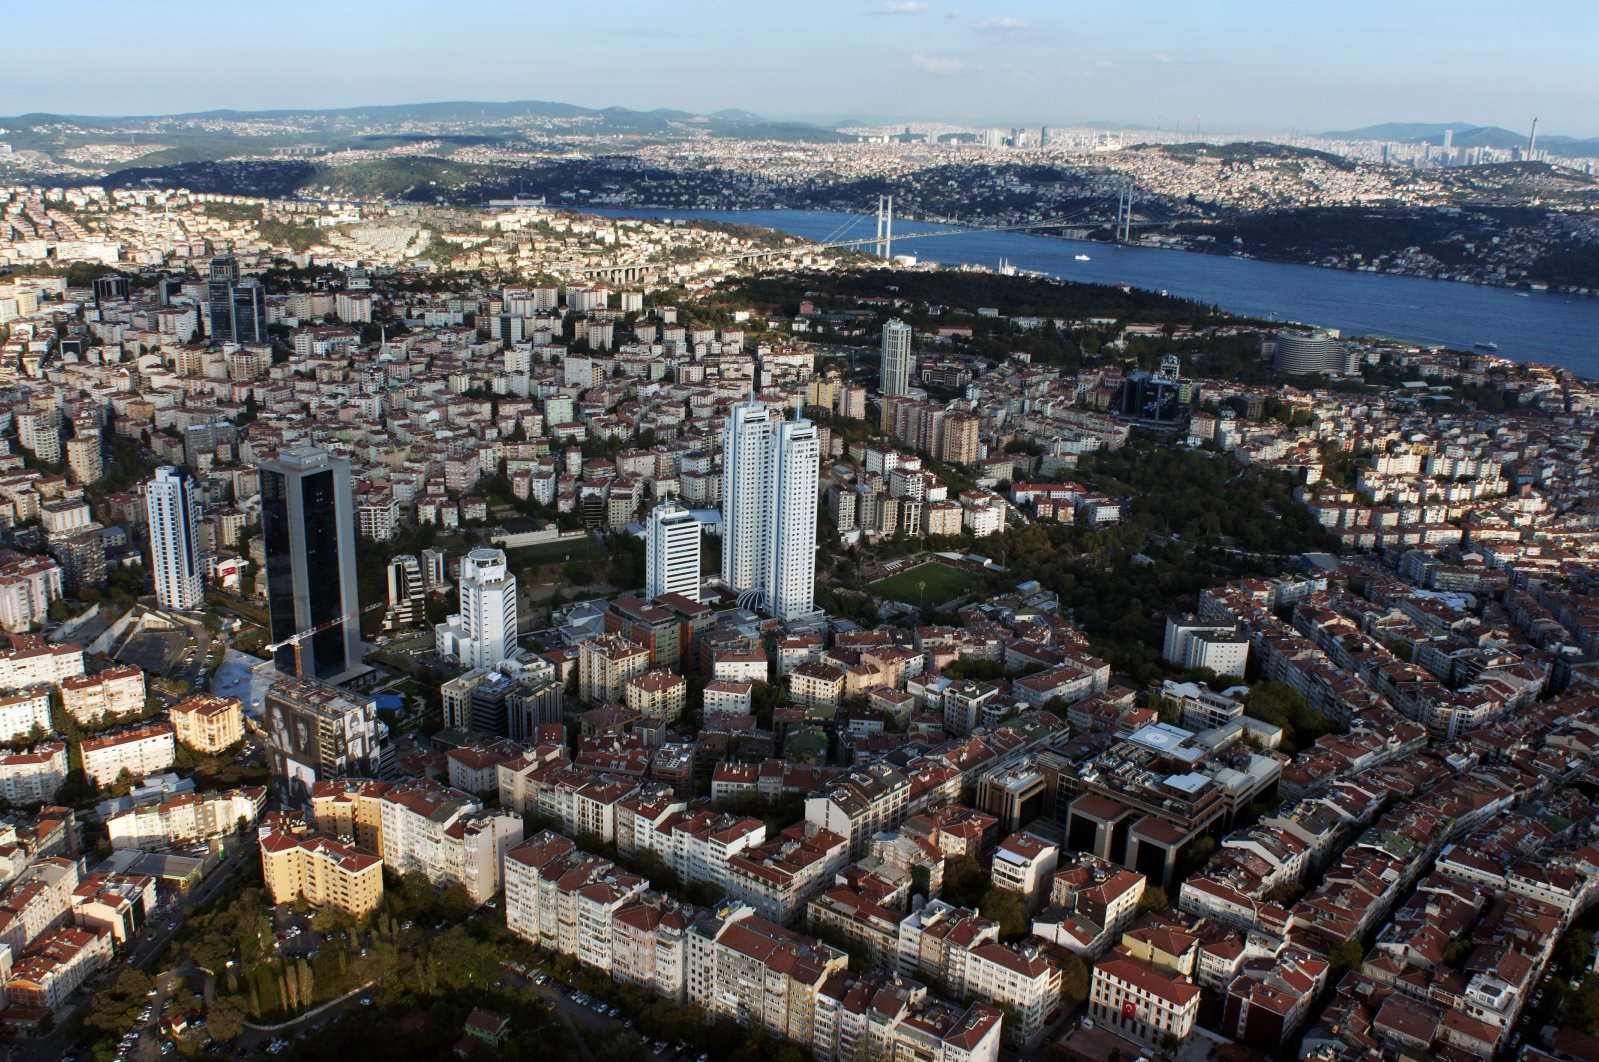 Houses and buildings are seen in Istanbul, Turkey, July 19, 2018. With 2,370 units sold in September, Istanbul enjoyed the lion's share of sales to foreign buyers. (iStock Photo)